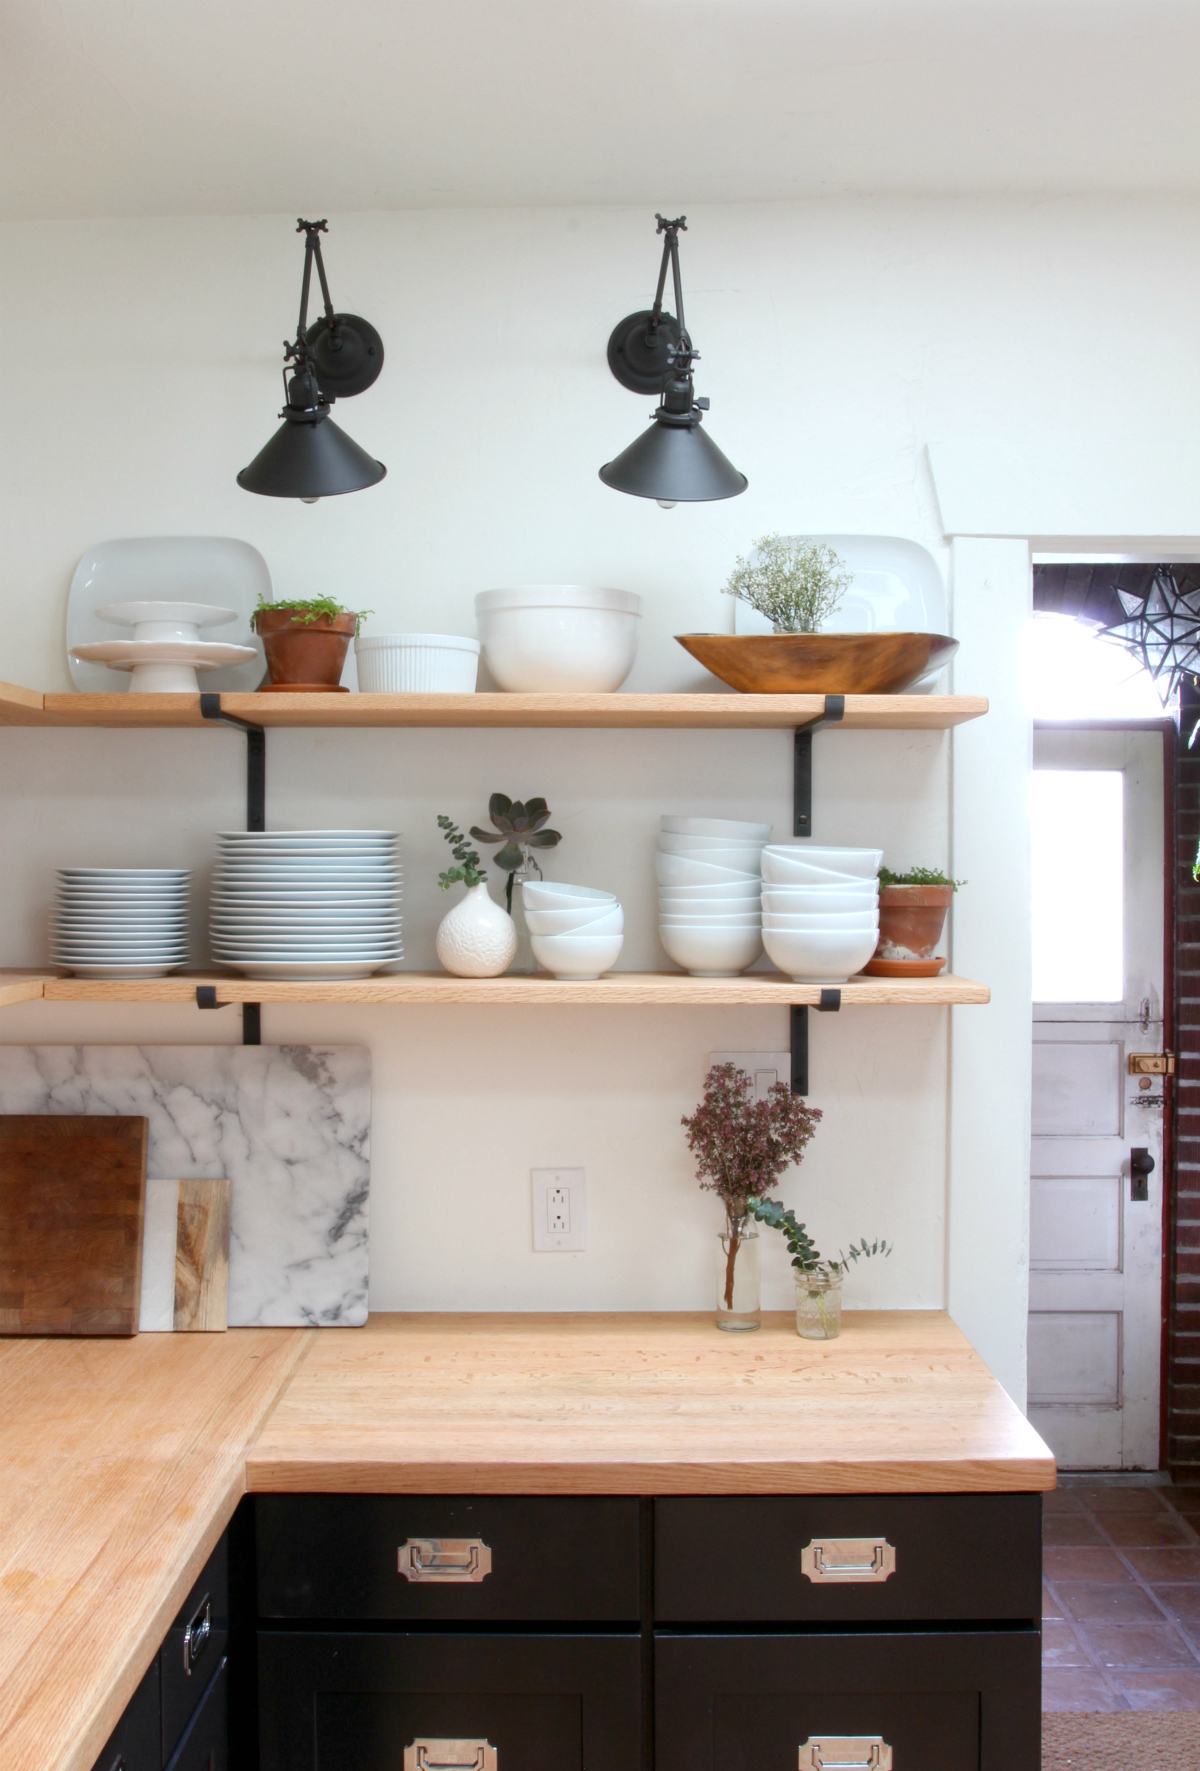 The Grit and Polish - Dexter Kitchen Remodel open shelves